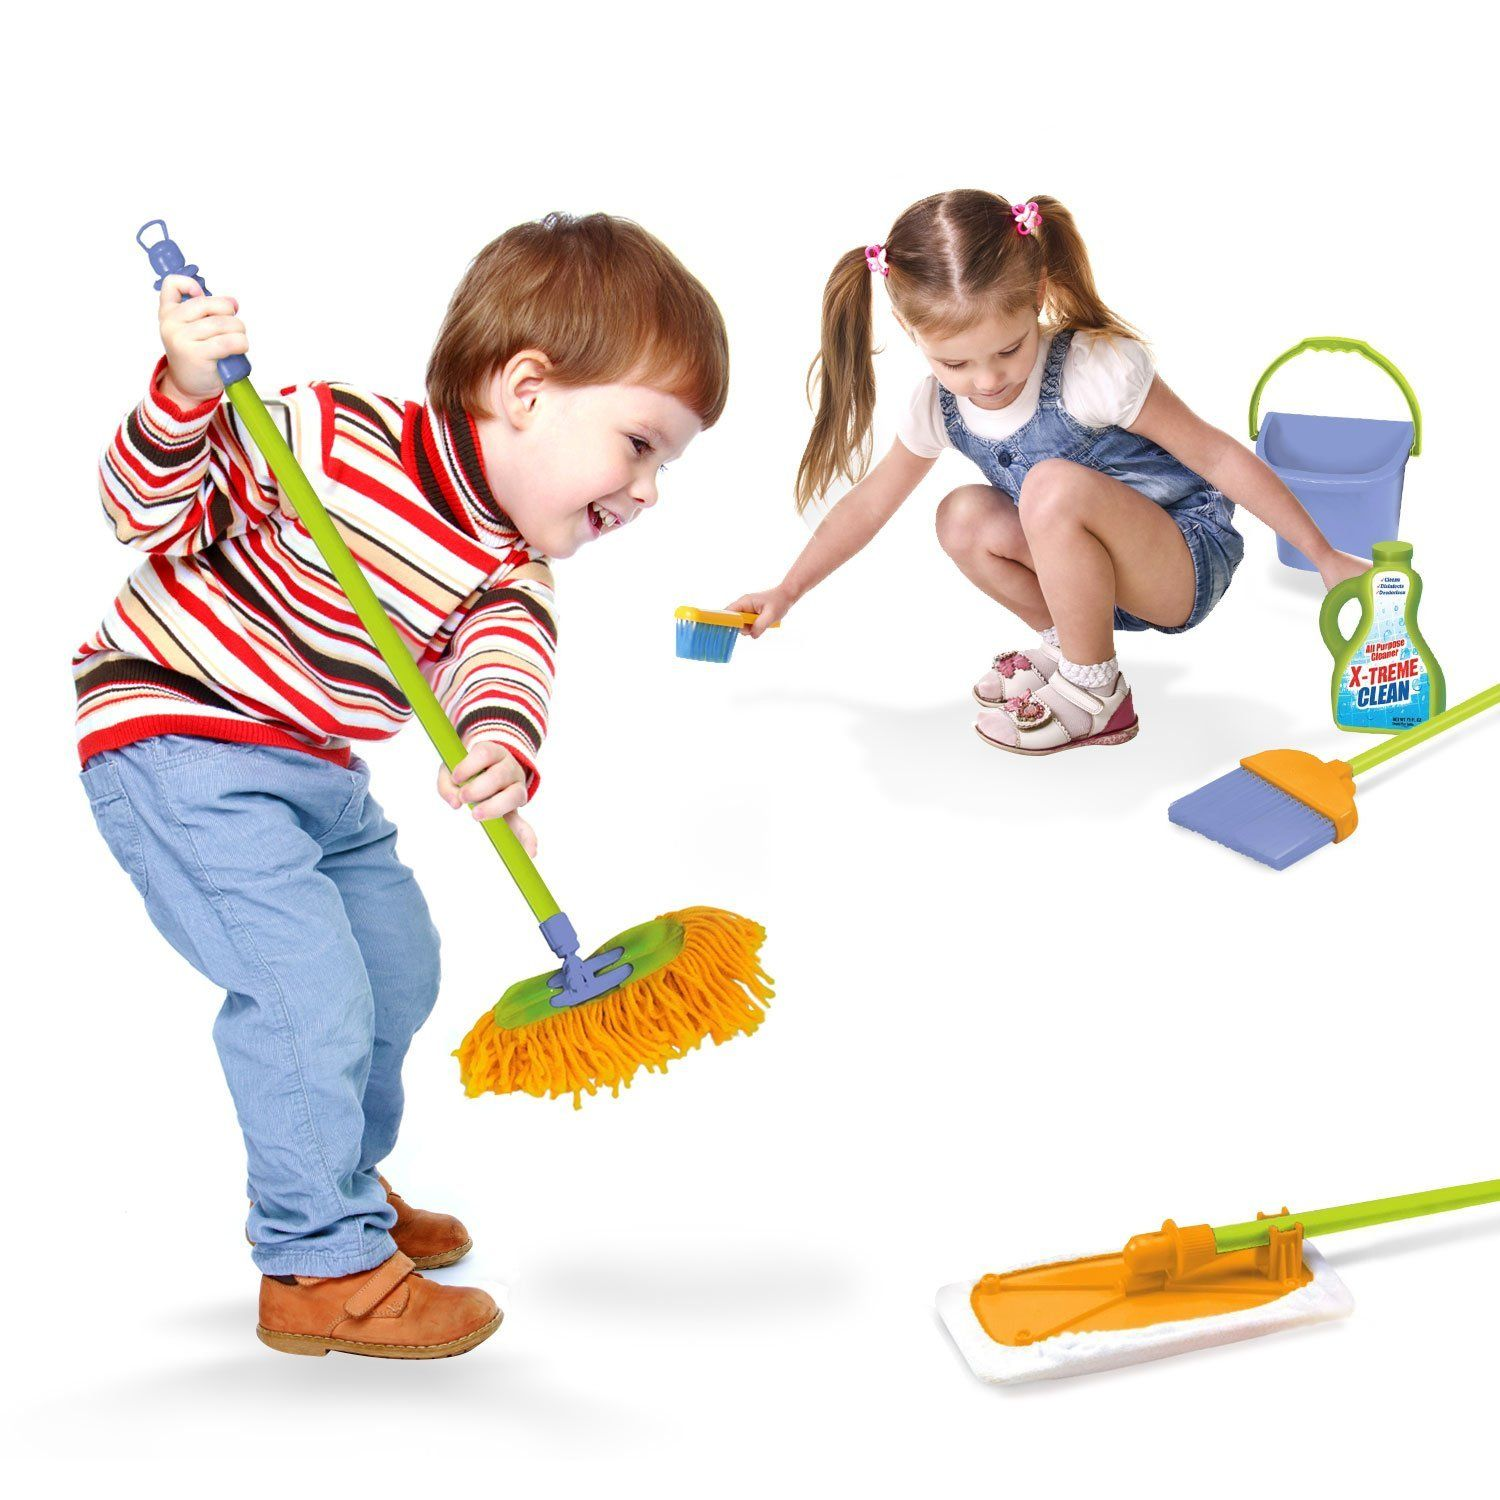 Amazon Kidzlane Kids Cleaning Set for Toddlers Up to Age 4